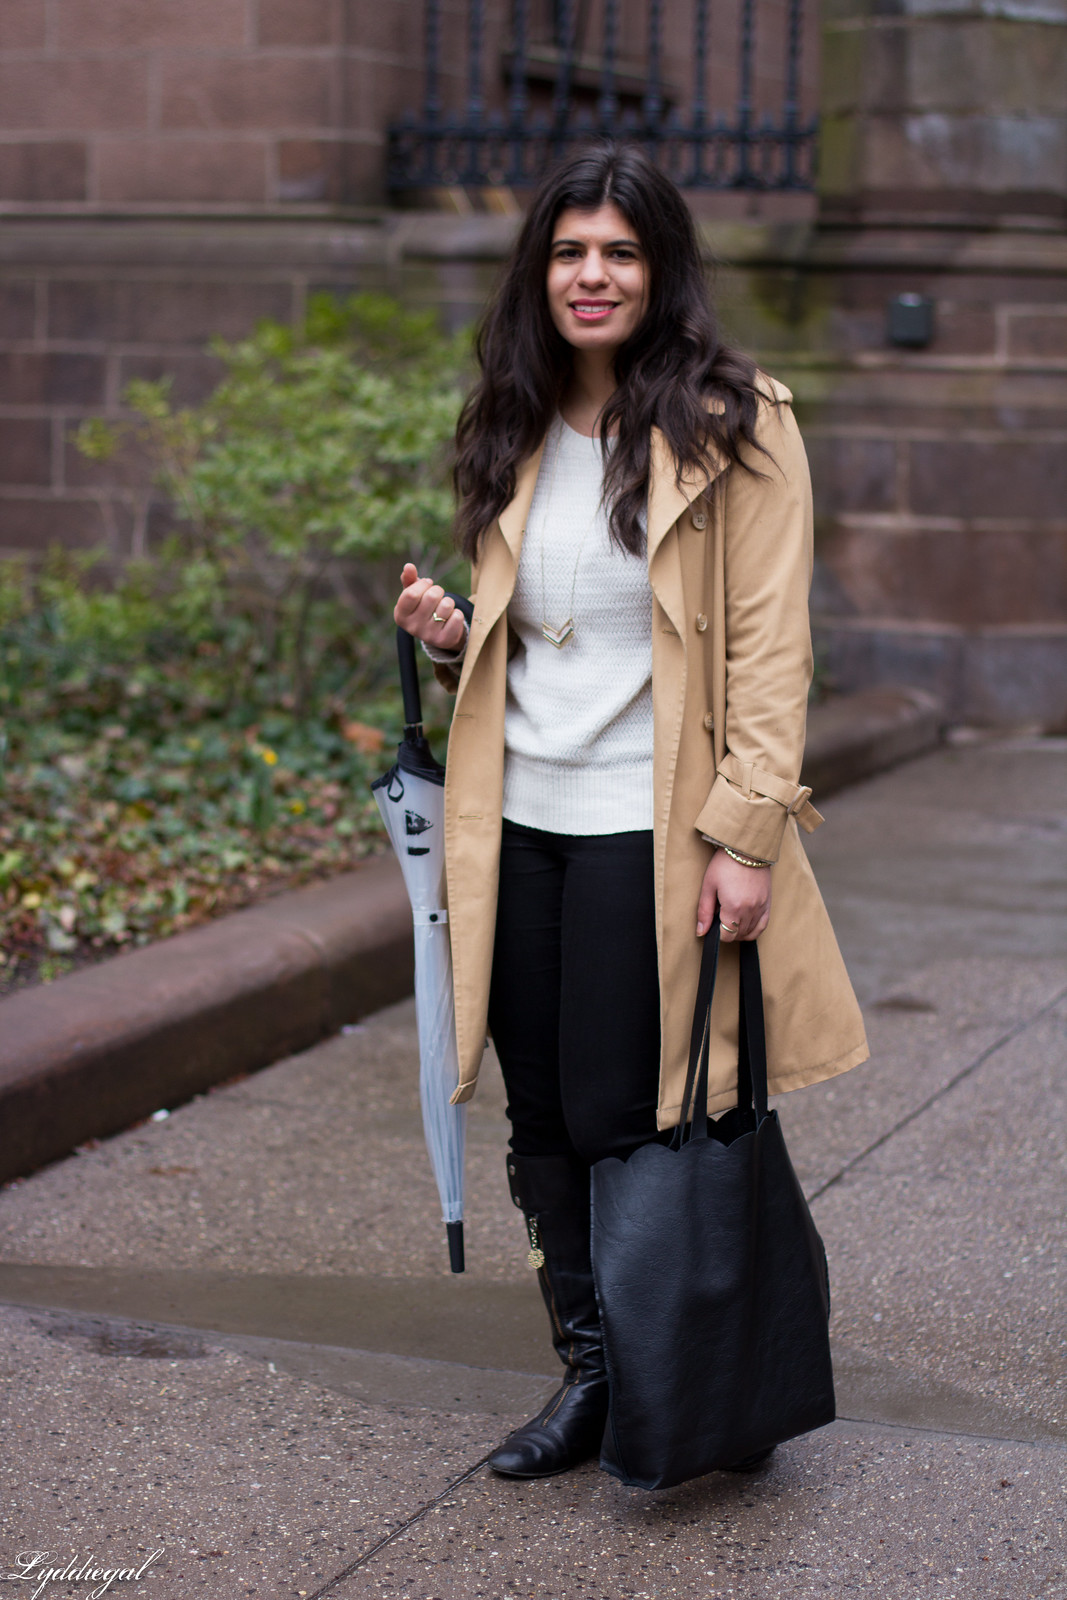 Trench coat, matine tilly clutch, kate spade umbrella, rainy day outfit-6.jpg